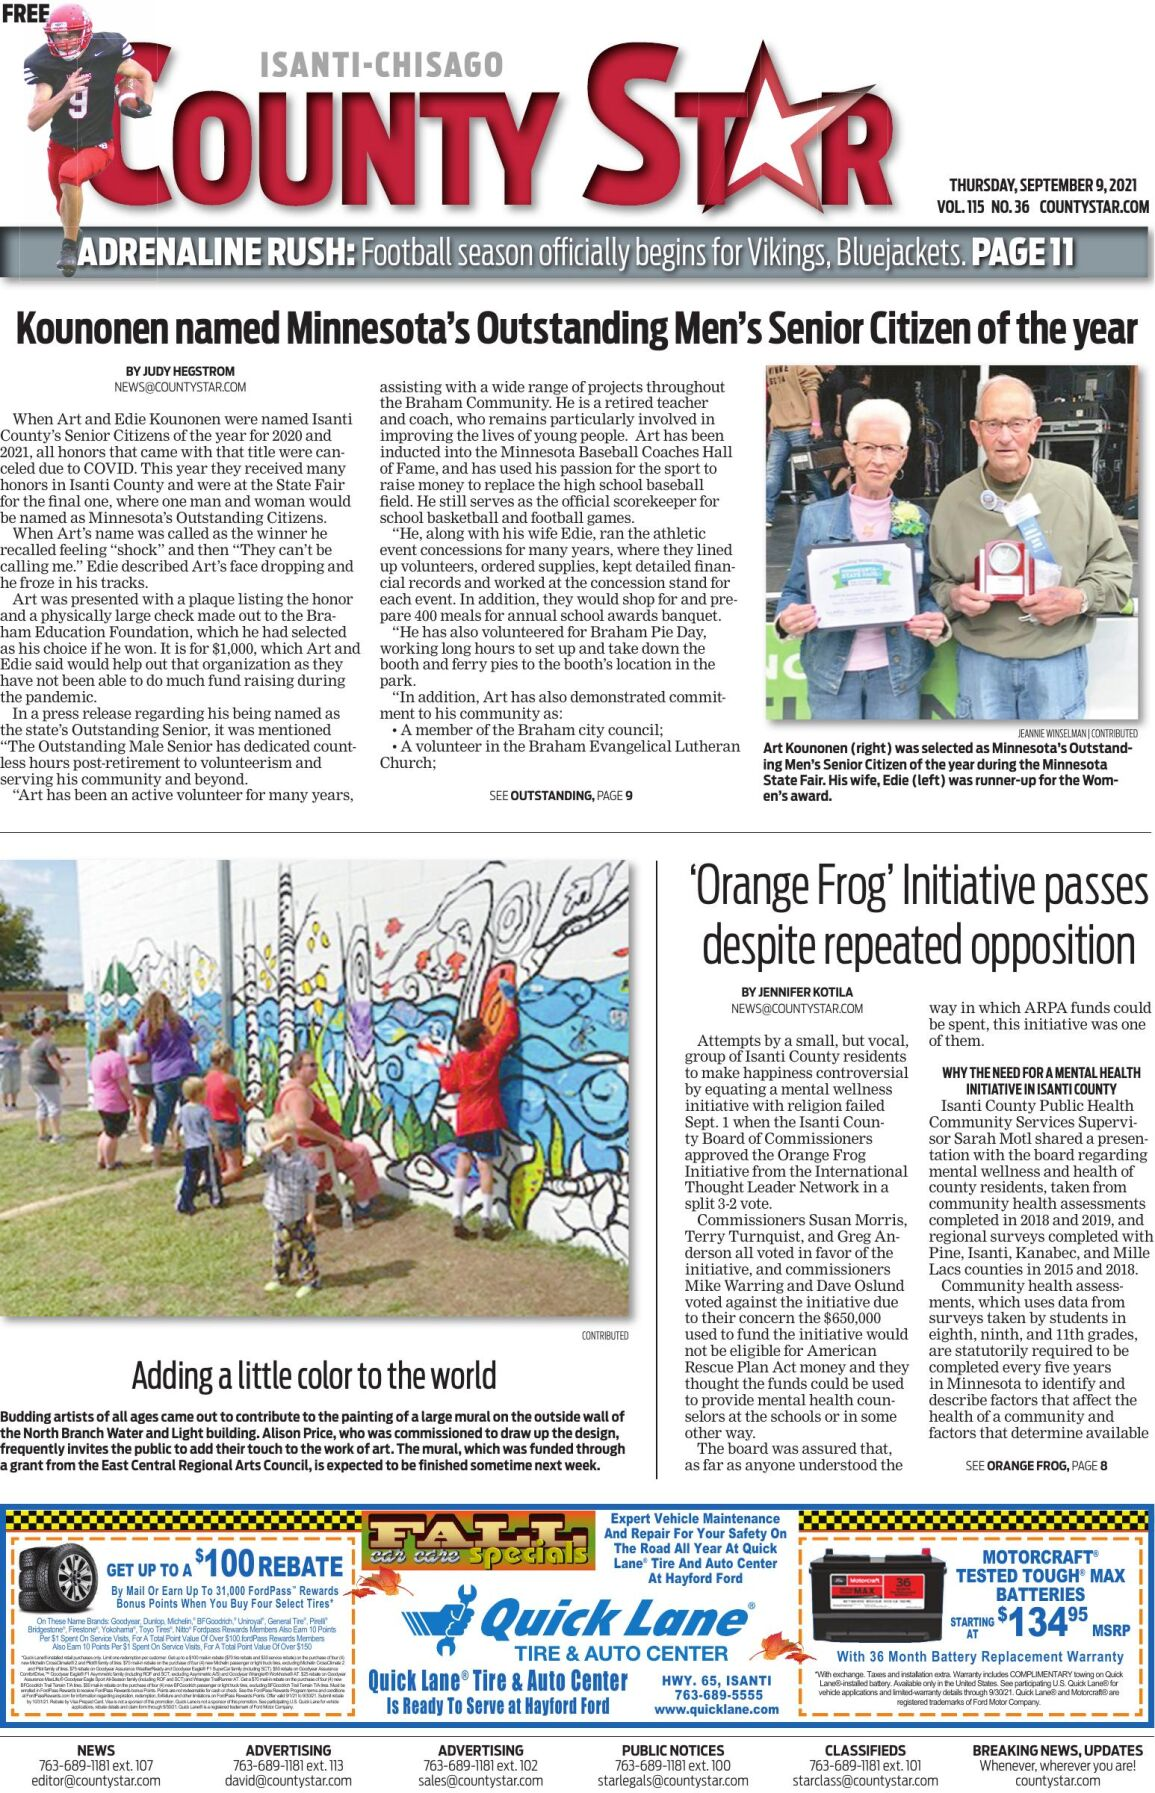 Isanti-Chisago County Star September 9, 2021 e-edition